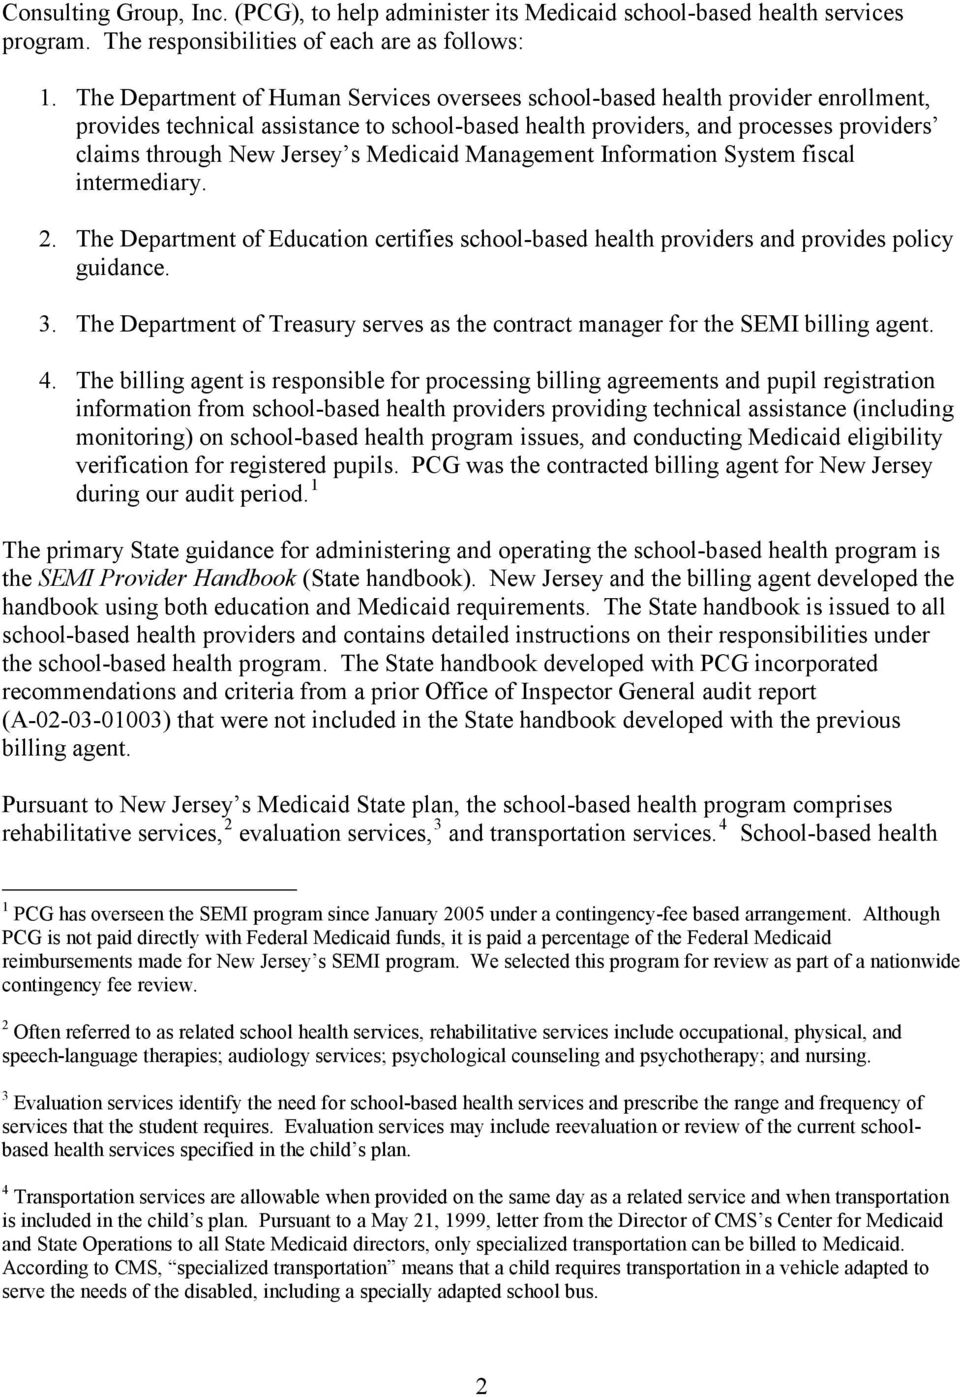 Medicaid Management Information System fiscal intermediary. 2. The Department of Education certifies school-based health providers and provides policy guidance. 3.